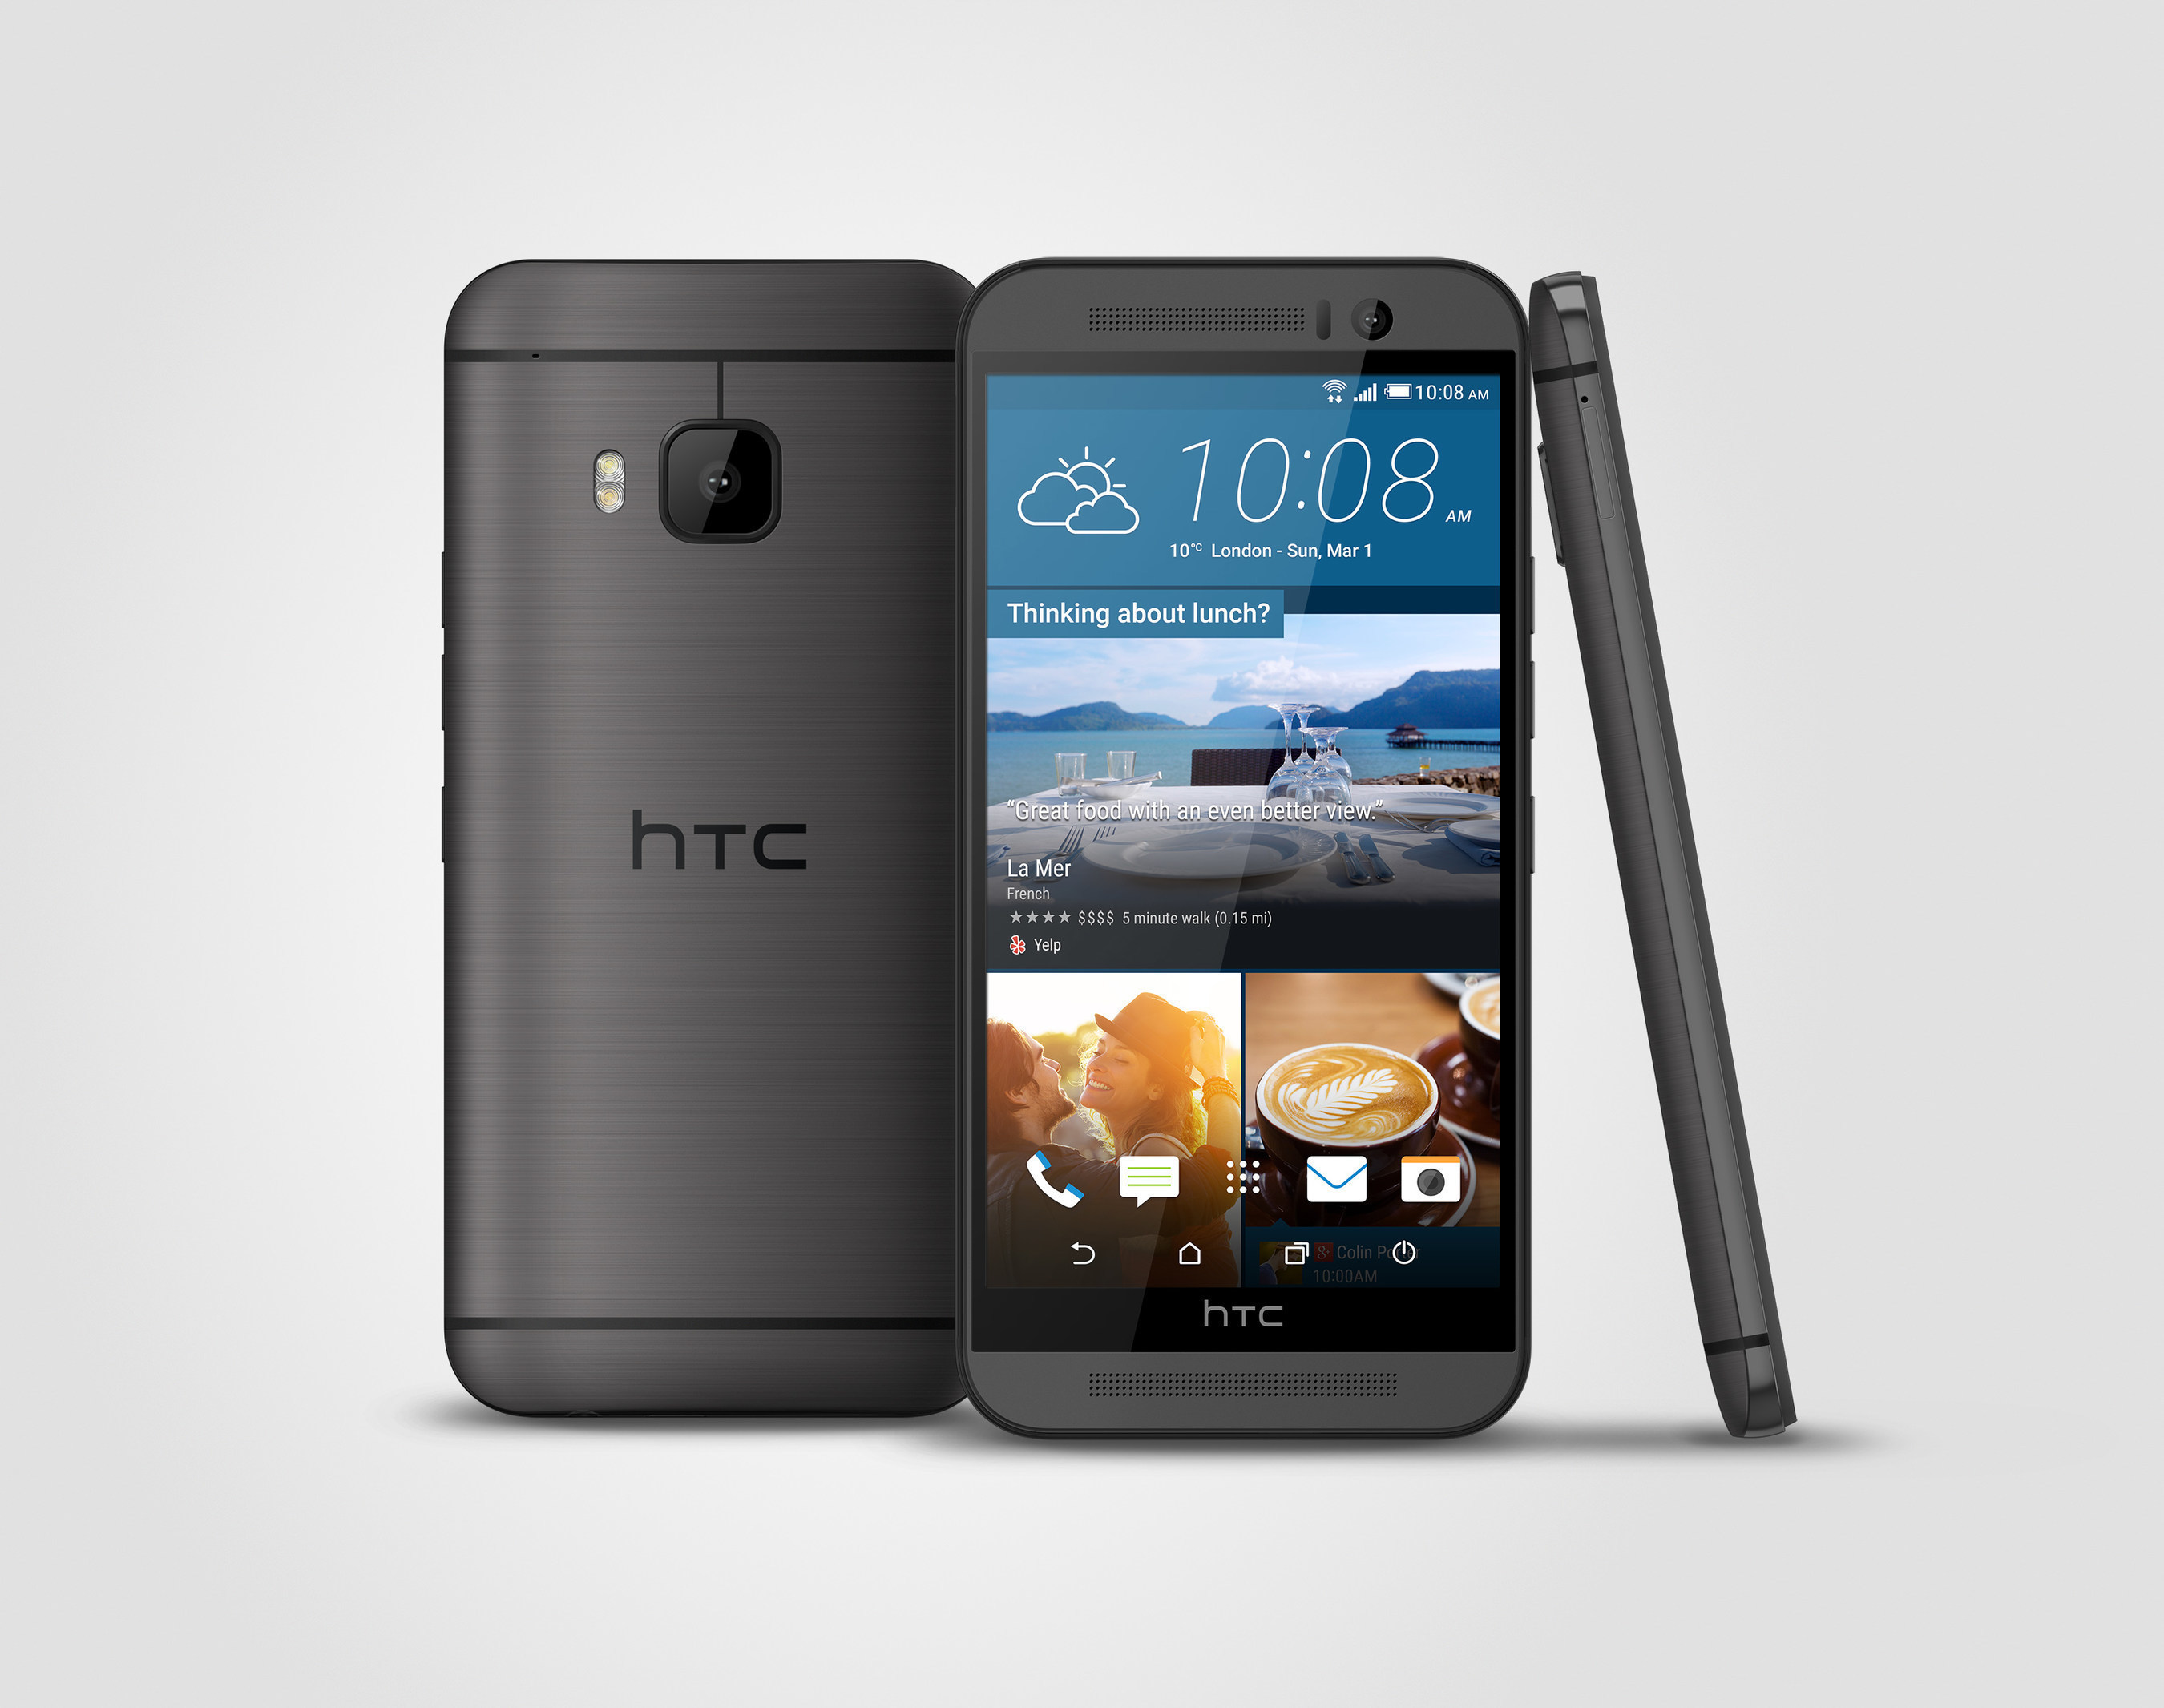 The new HTC One has a stunning dual-finish metal body, a 20MP camera, intuitive apps that anticipate your needs, front-facing BoomSound(tm) speakers with Dolby Audio and a 5-inch full HD screen. The HTC One M9, that comes with the industry-leading UH OH(tm) Protection, will be available online in the U.S. at 12:01 a.m. ET on Friday, March 27 and in-store on April 10 at major carriers and retailers.